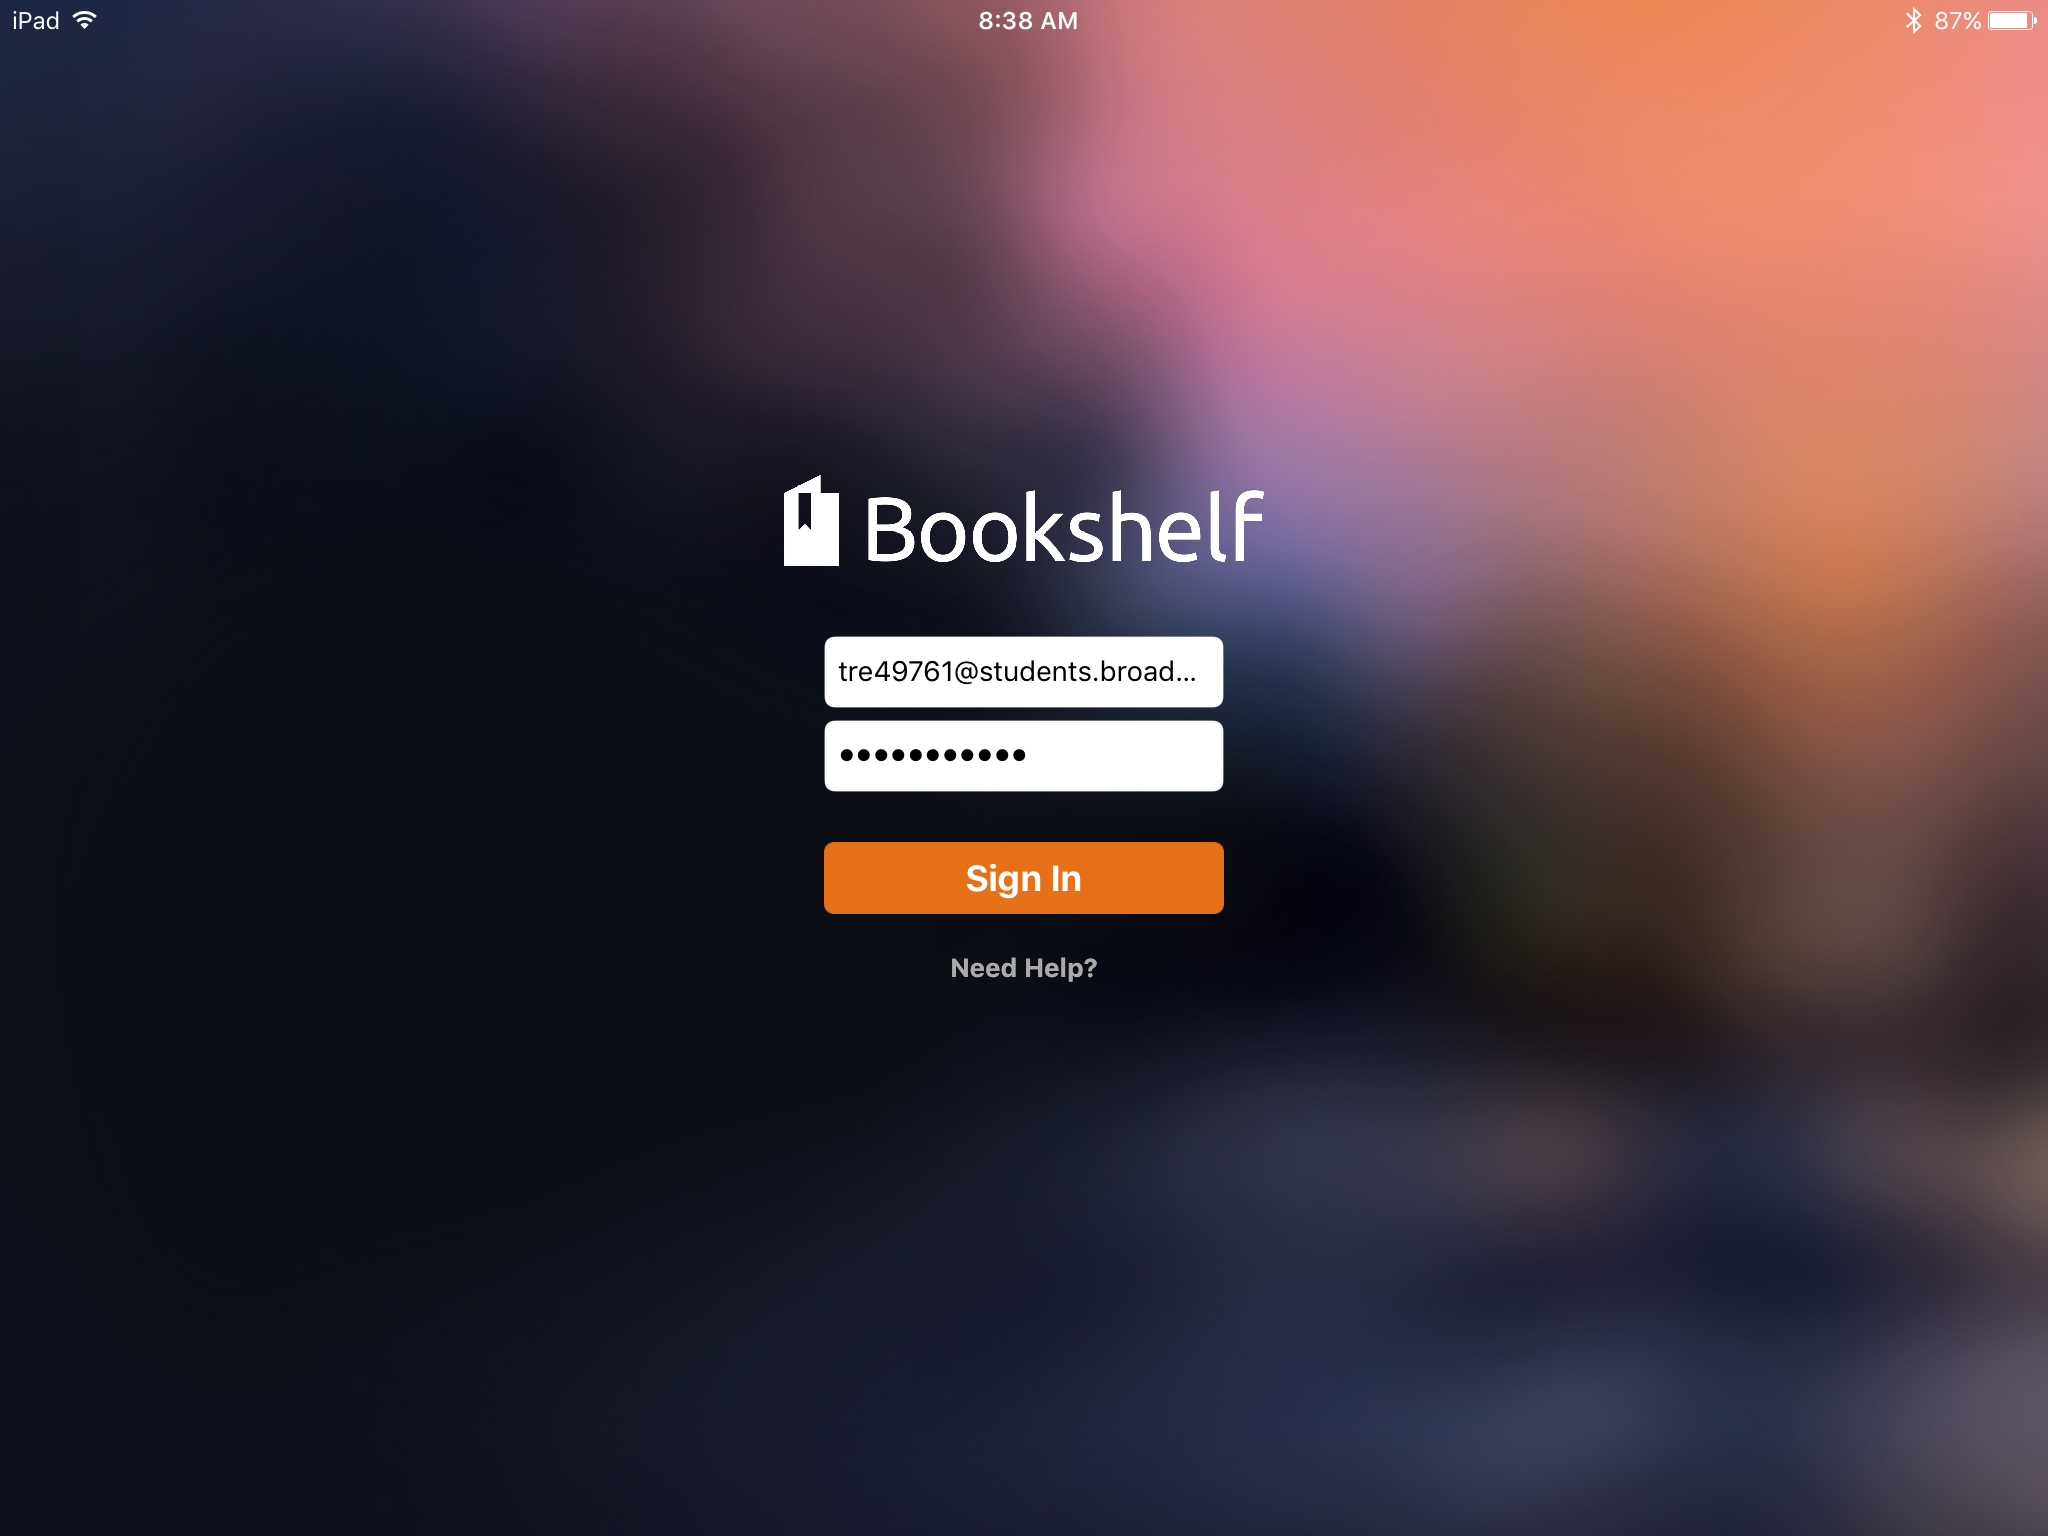 login screen for Bookshelf